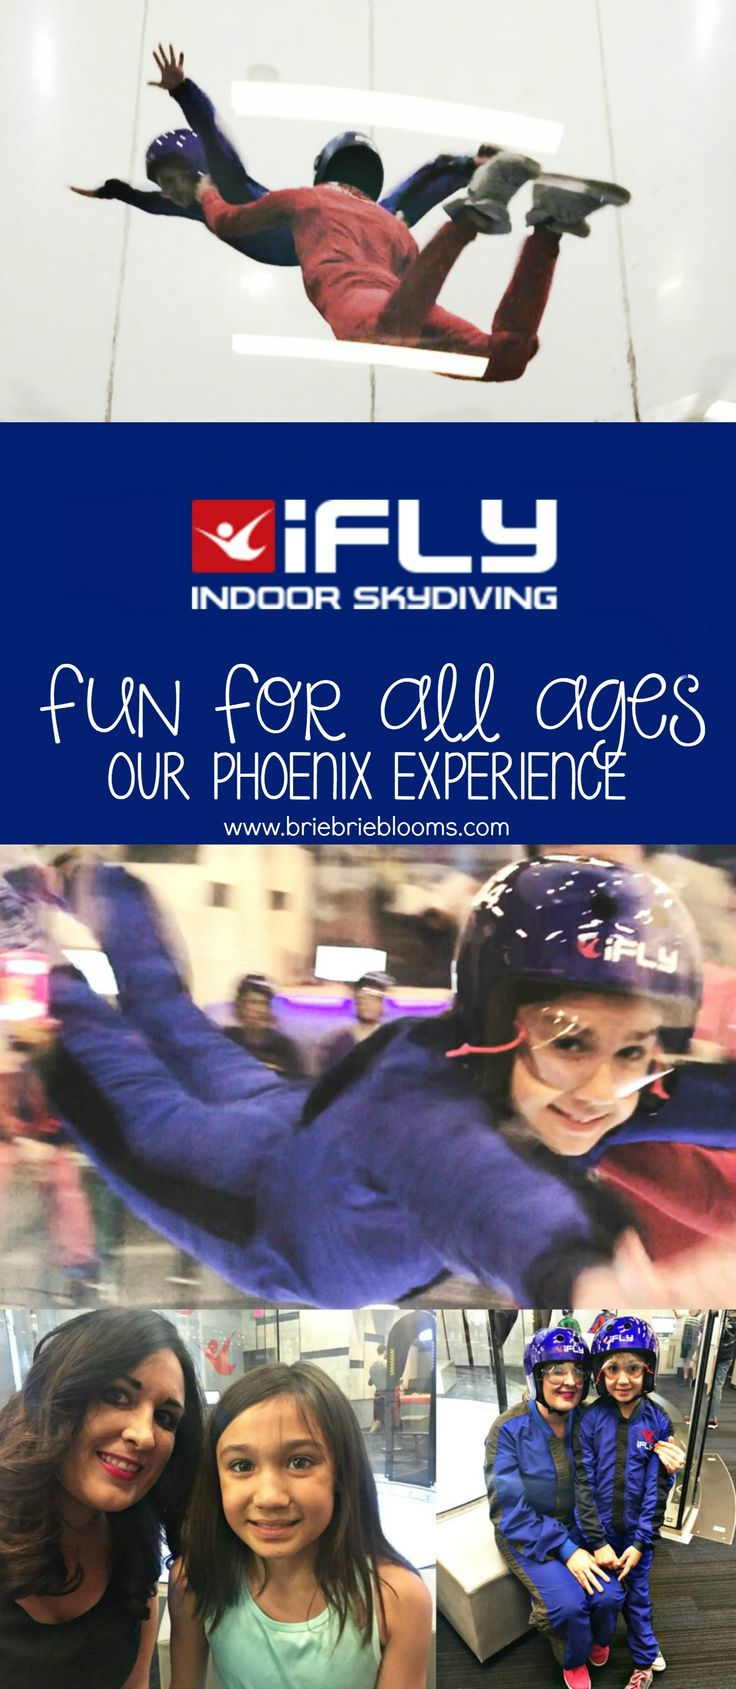 iFLY Indoor Skydiving is a great family activity fun for all ages. Our first skydiving experience at iFLY Phoenix was awesome! Check to see if there is an iFLY near you or where you're traveling. #iFLYPHX #iFLYTV #iFLYSocial #ad